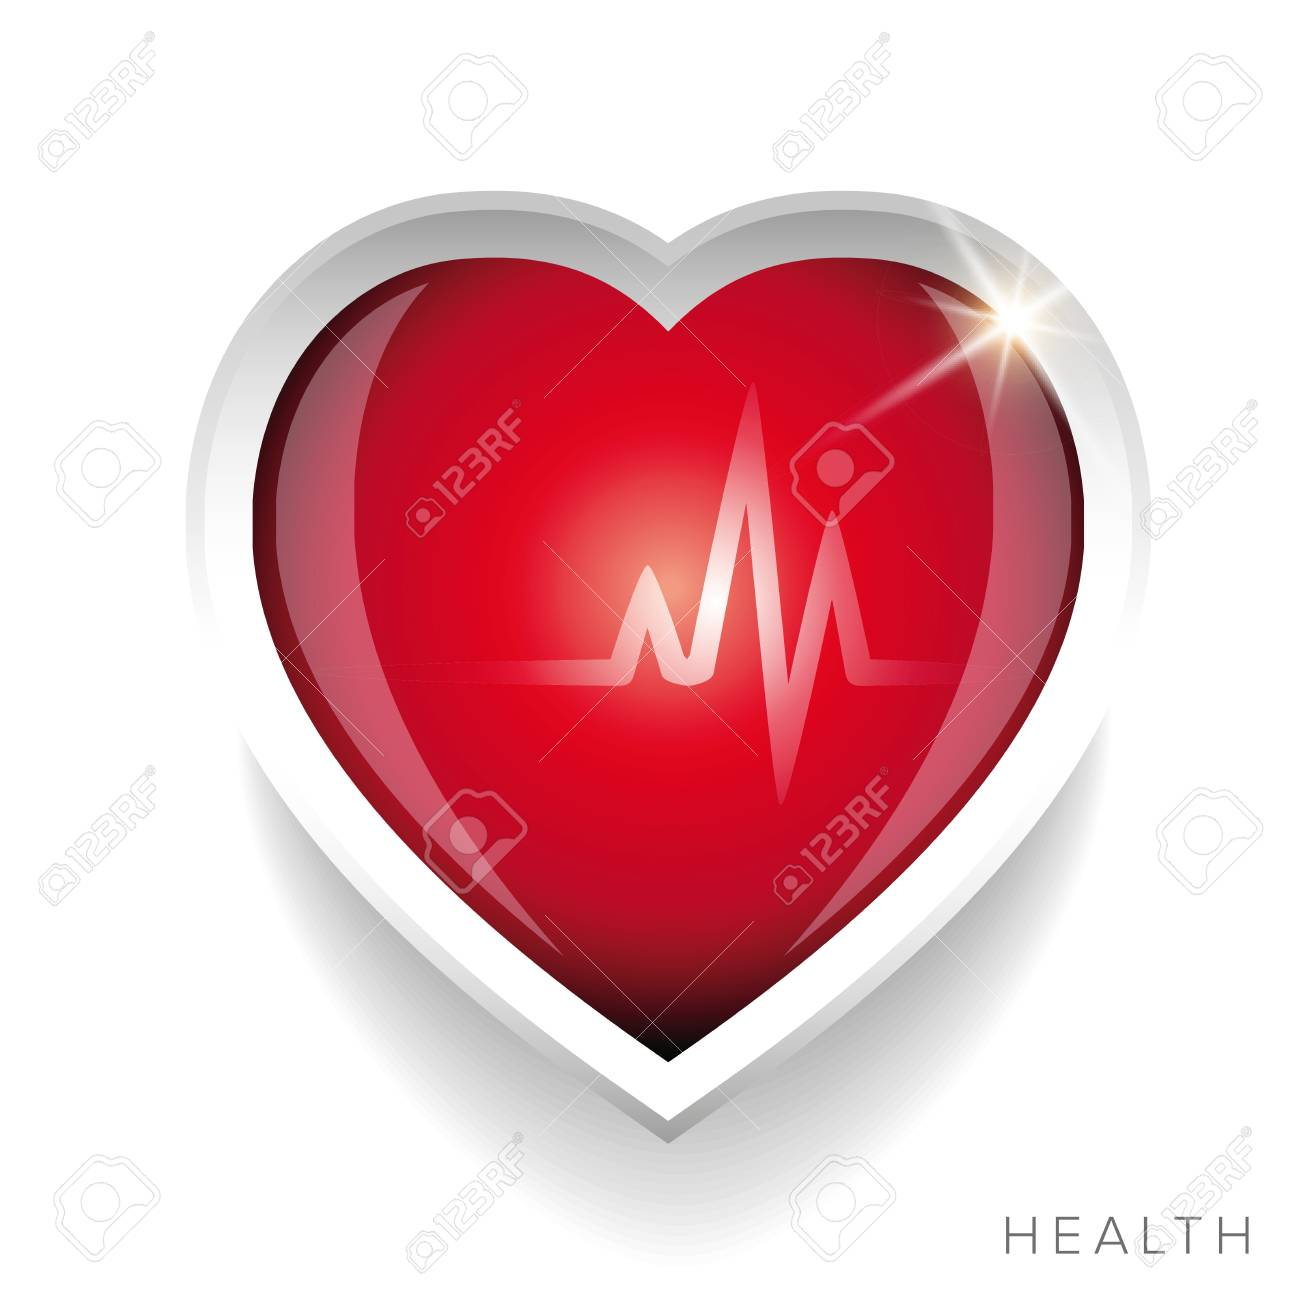 Cardiogram and red heart vector - 50437484